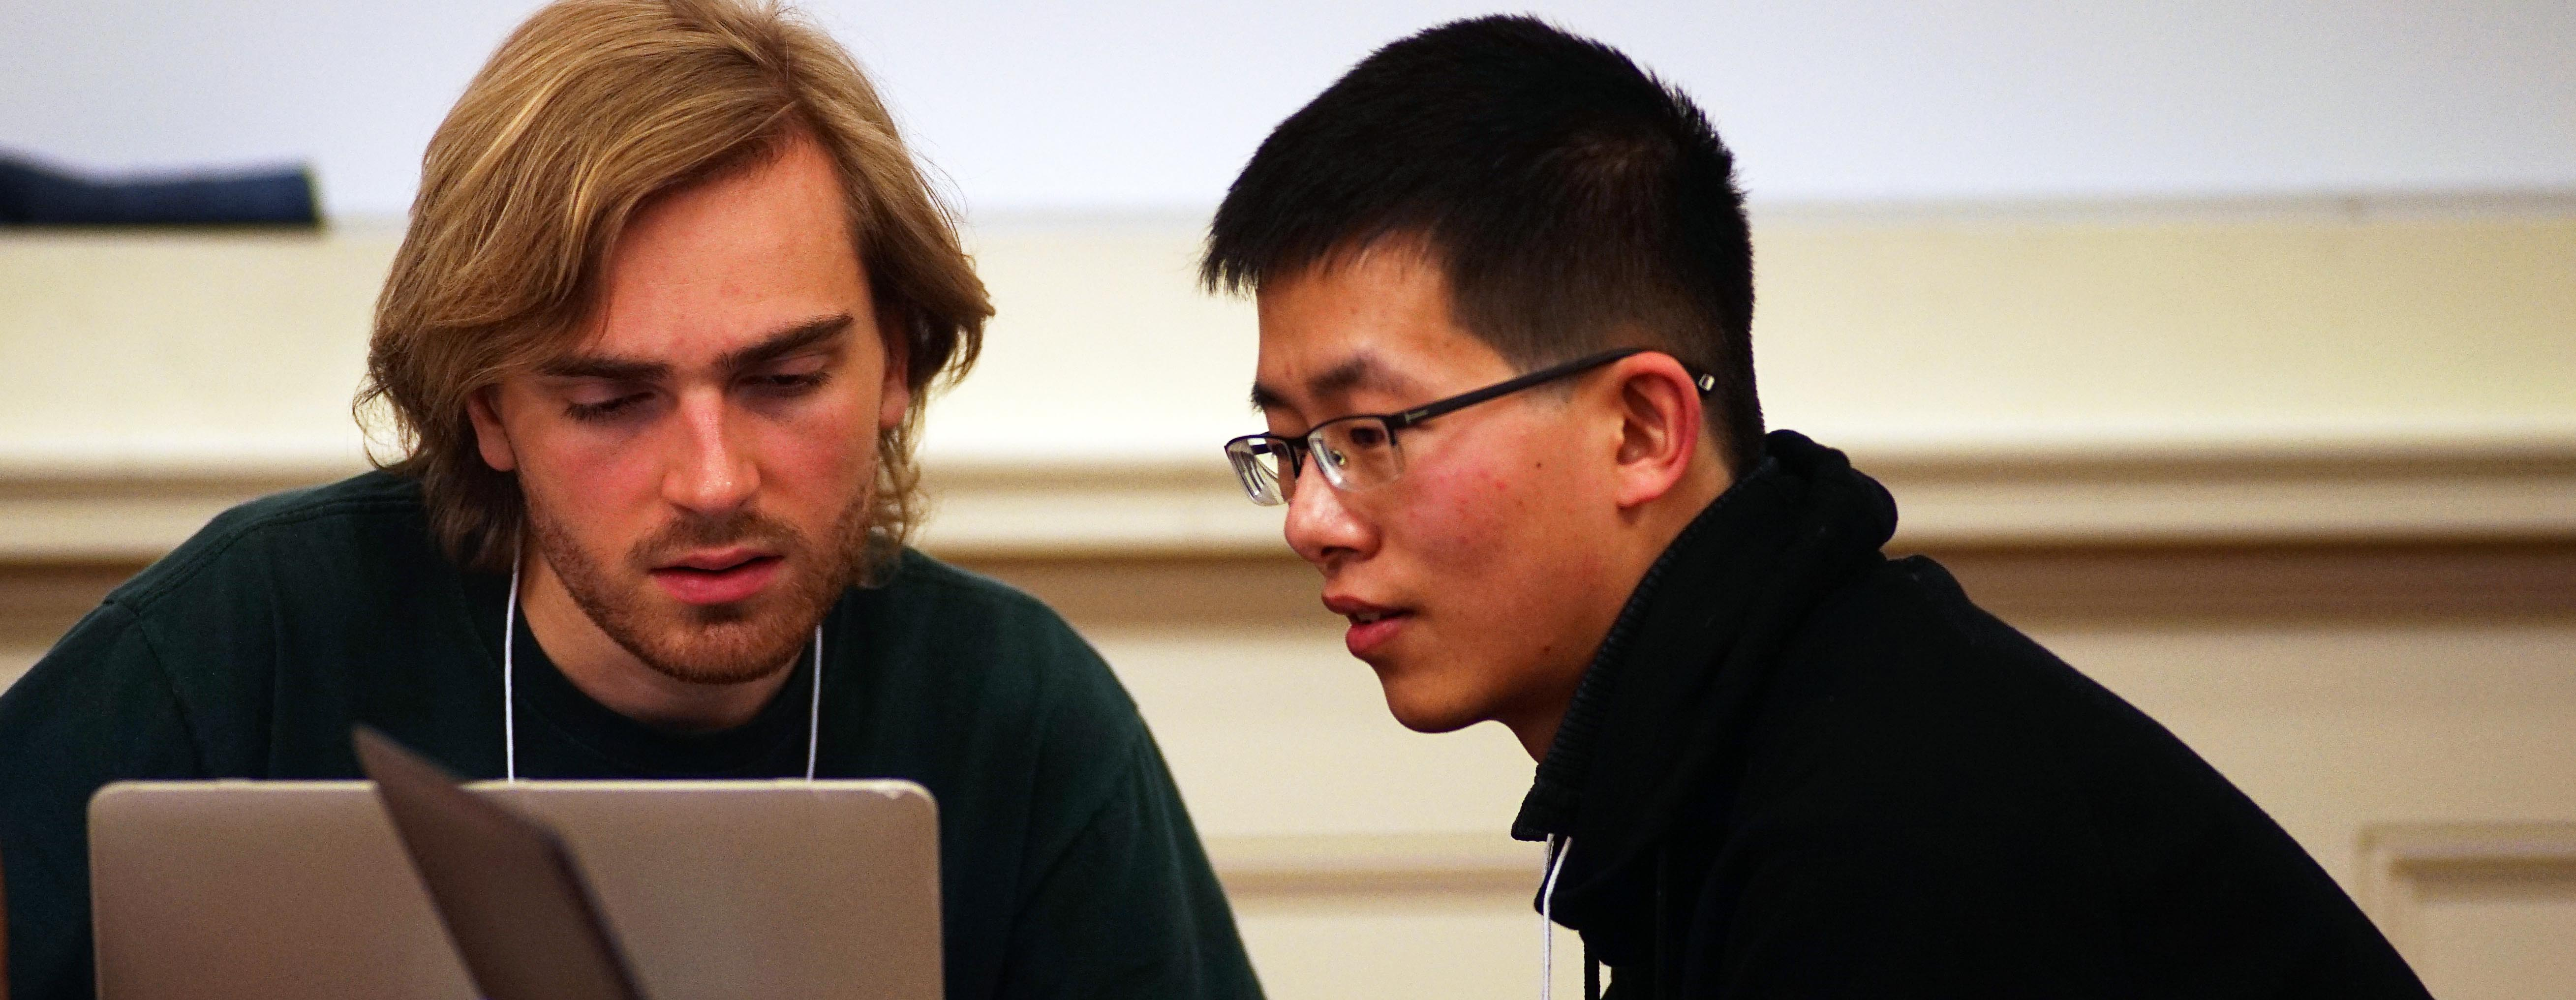 Students work together on a laptop at DataFest